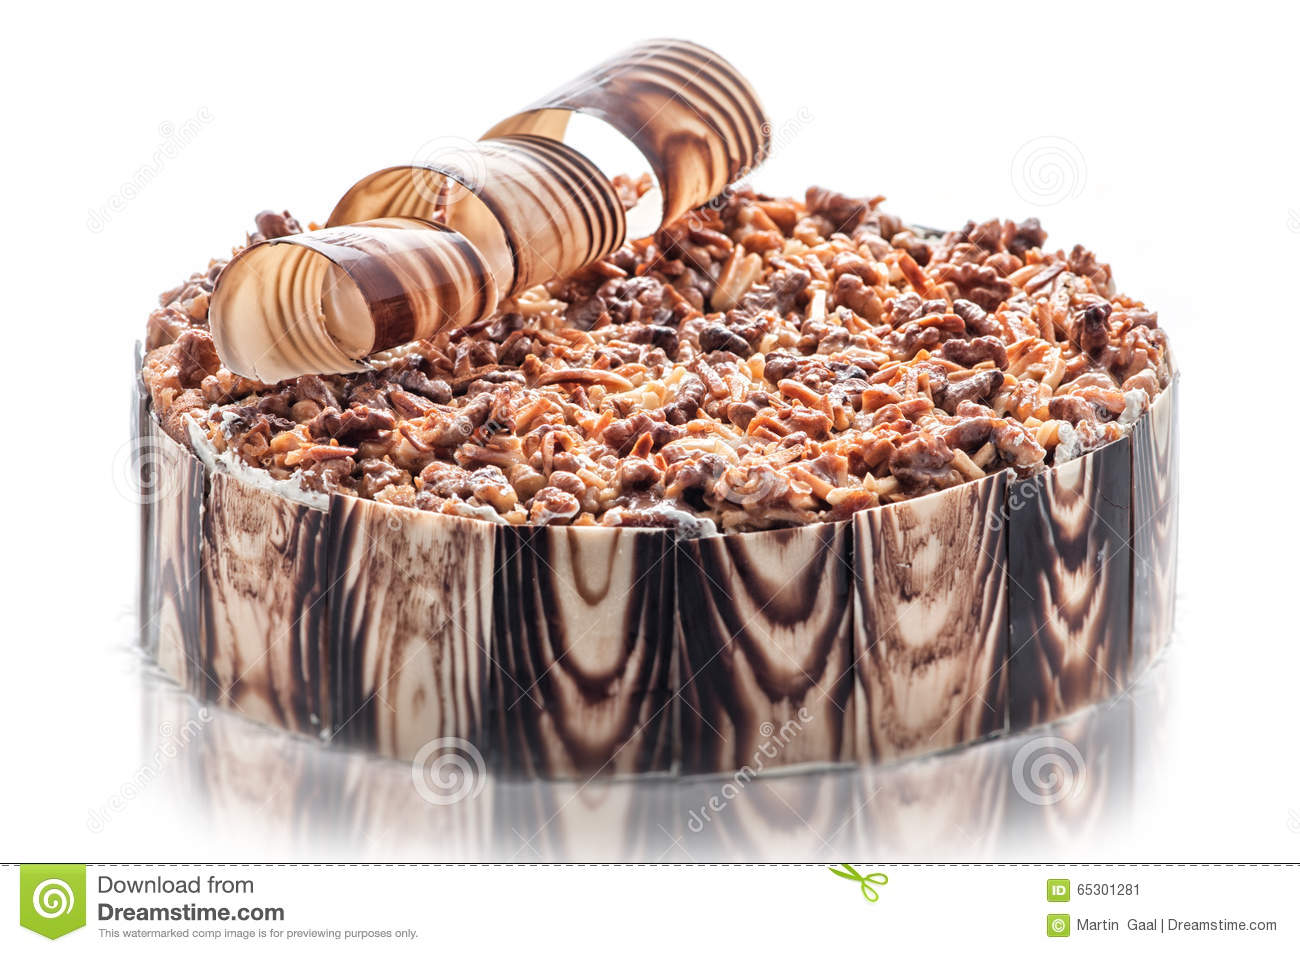 birthday chocolate cake with nuts and chocolate decoration piece of cream cake patisserie. Black Bedroom Furniture Sets. Home Design Ideas